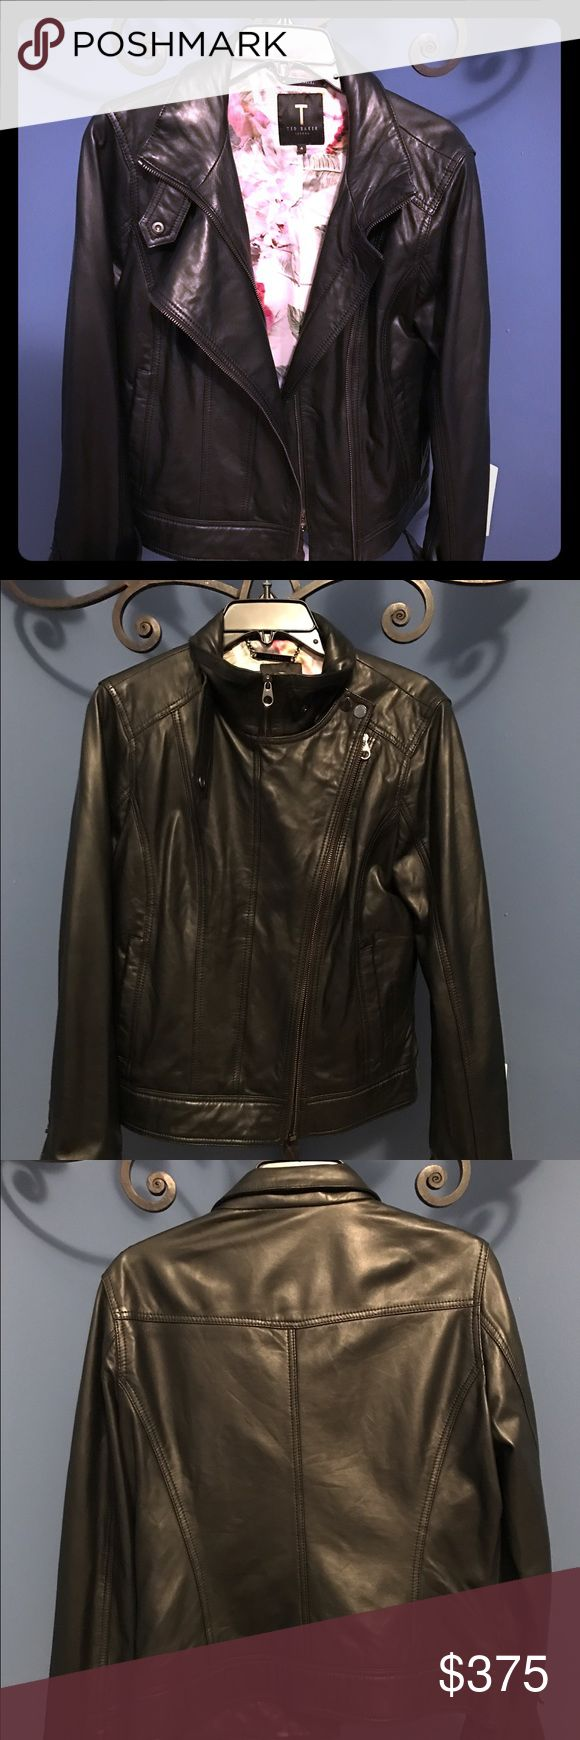 Ted Baker Women's Black Leather Jacket NWOT. Never worn. Sharp jacket! Pair with bright silk blouse and jeans. Ted Baker London Jackets & Coats